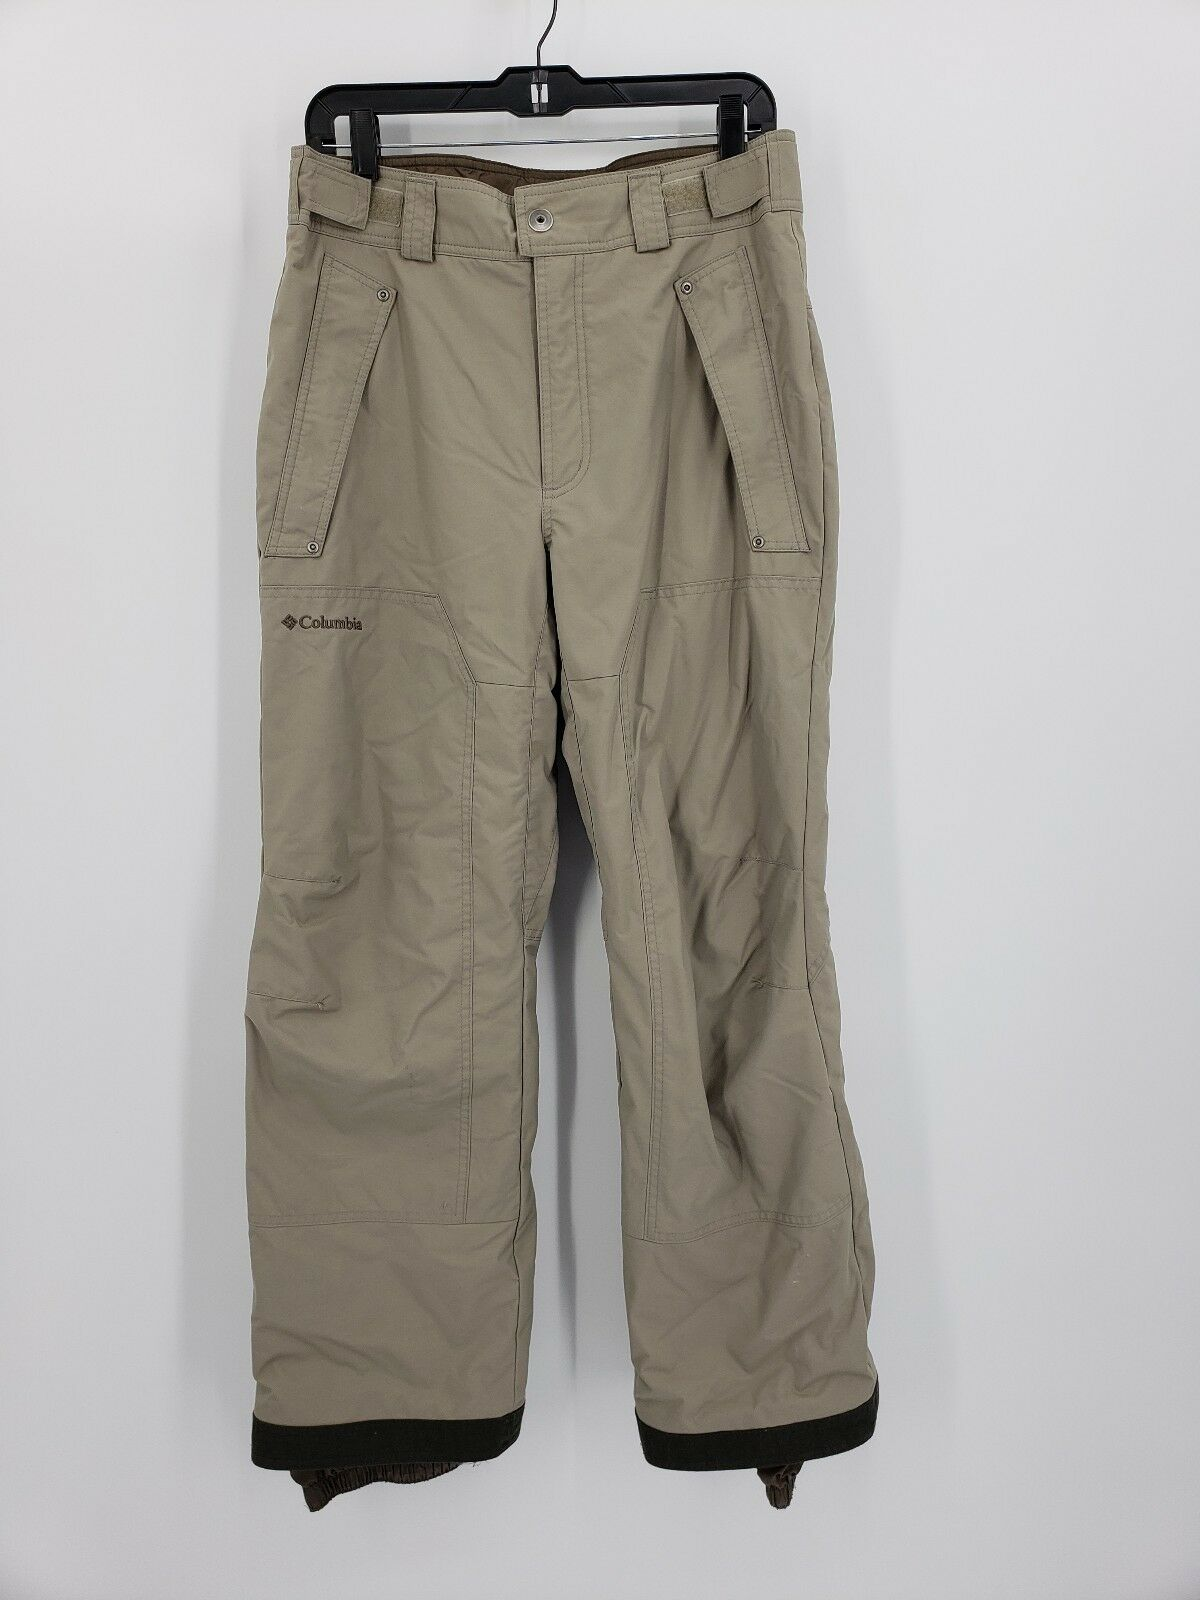 COLUMBIA Mens Boundary Run Insulated Ski Snow Pants Size Small Beige